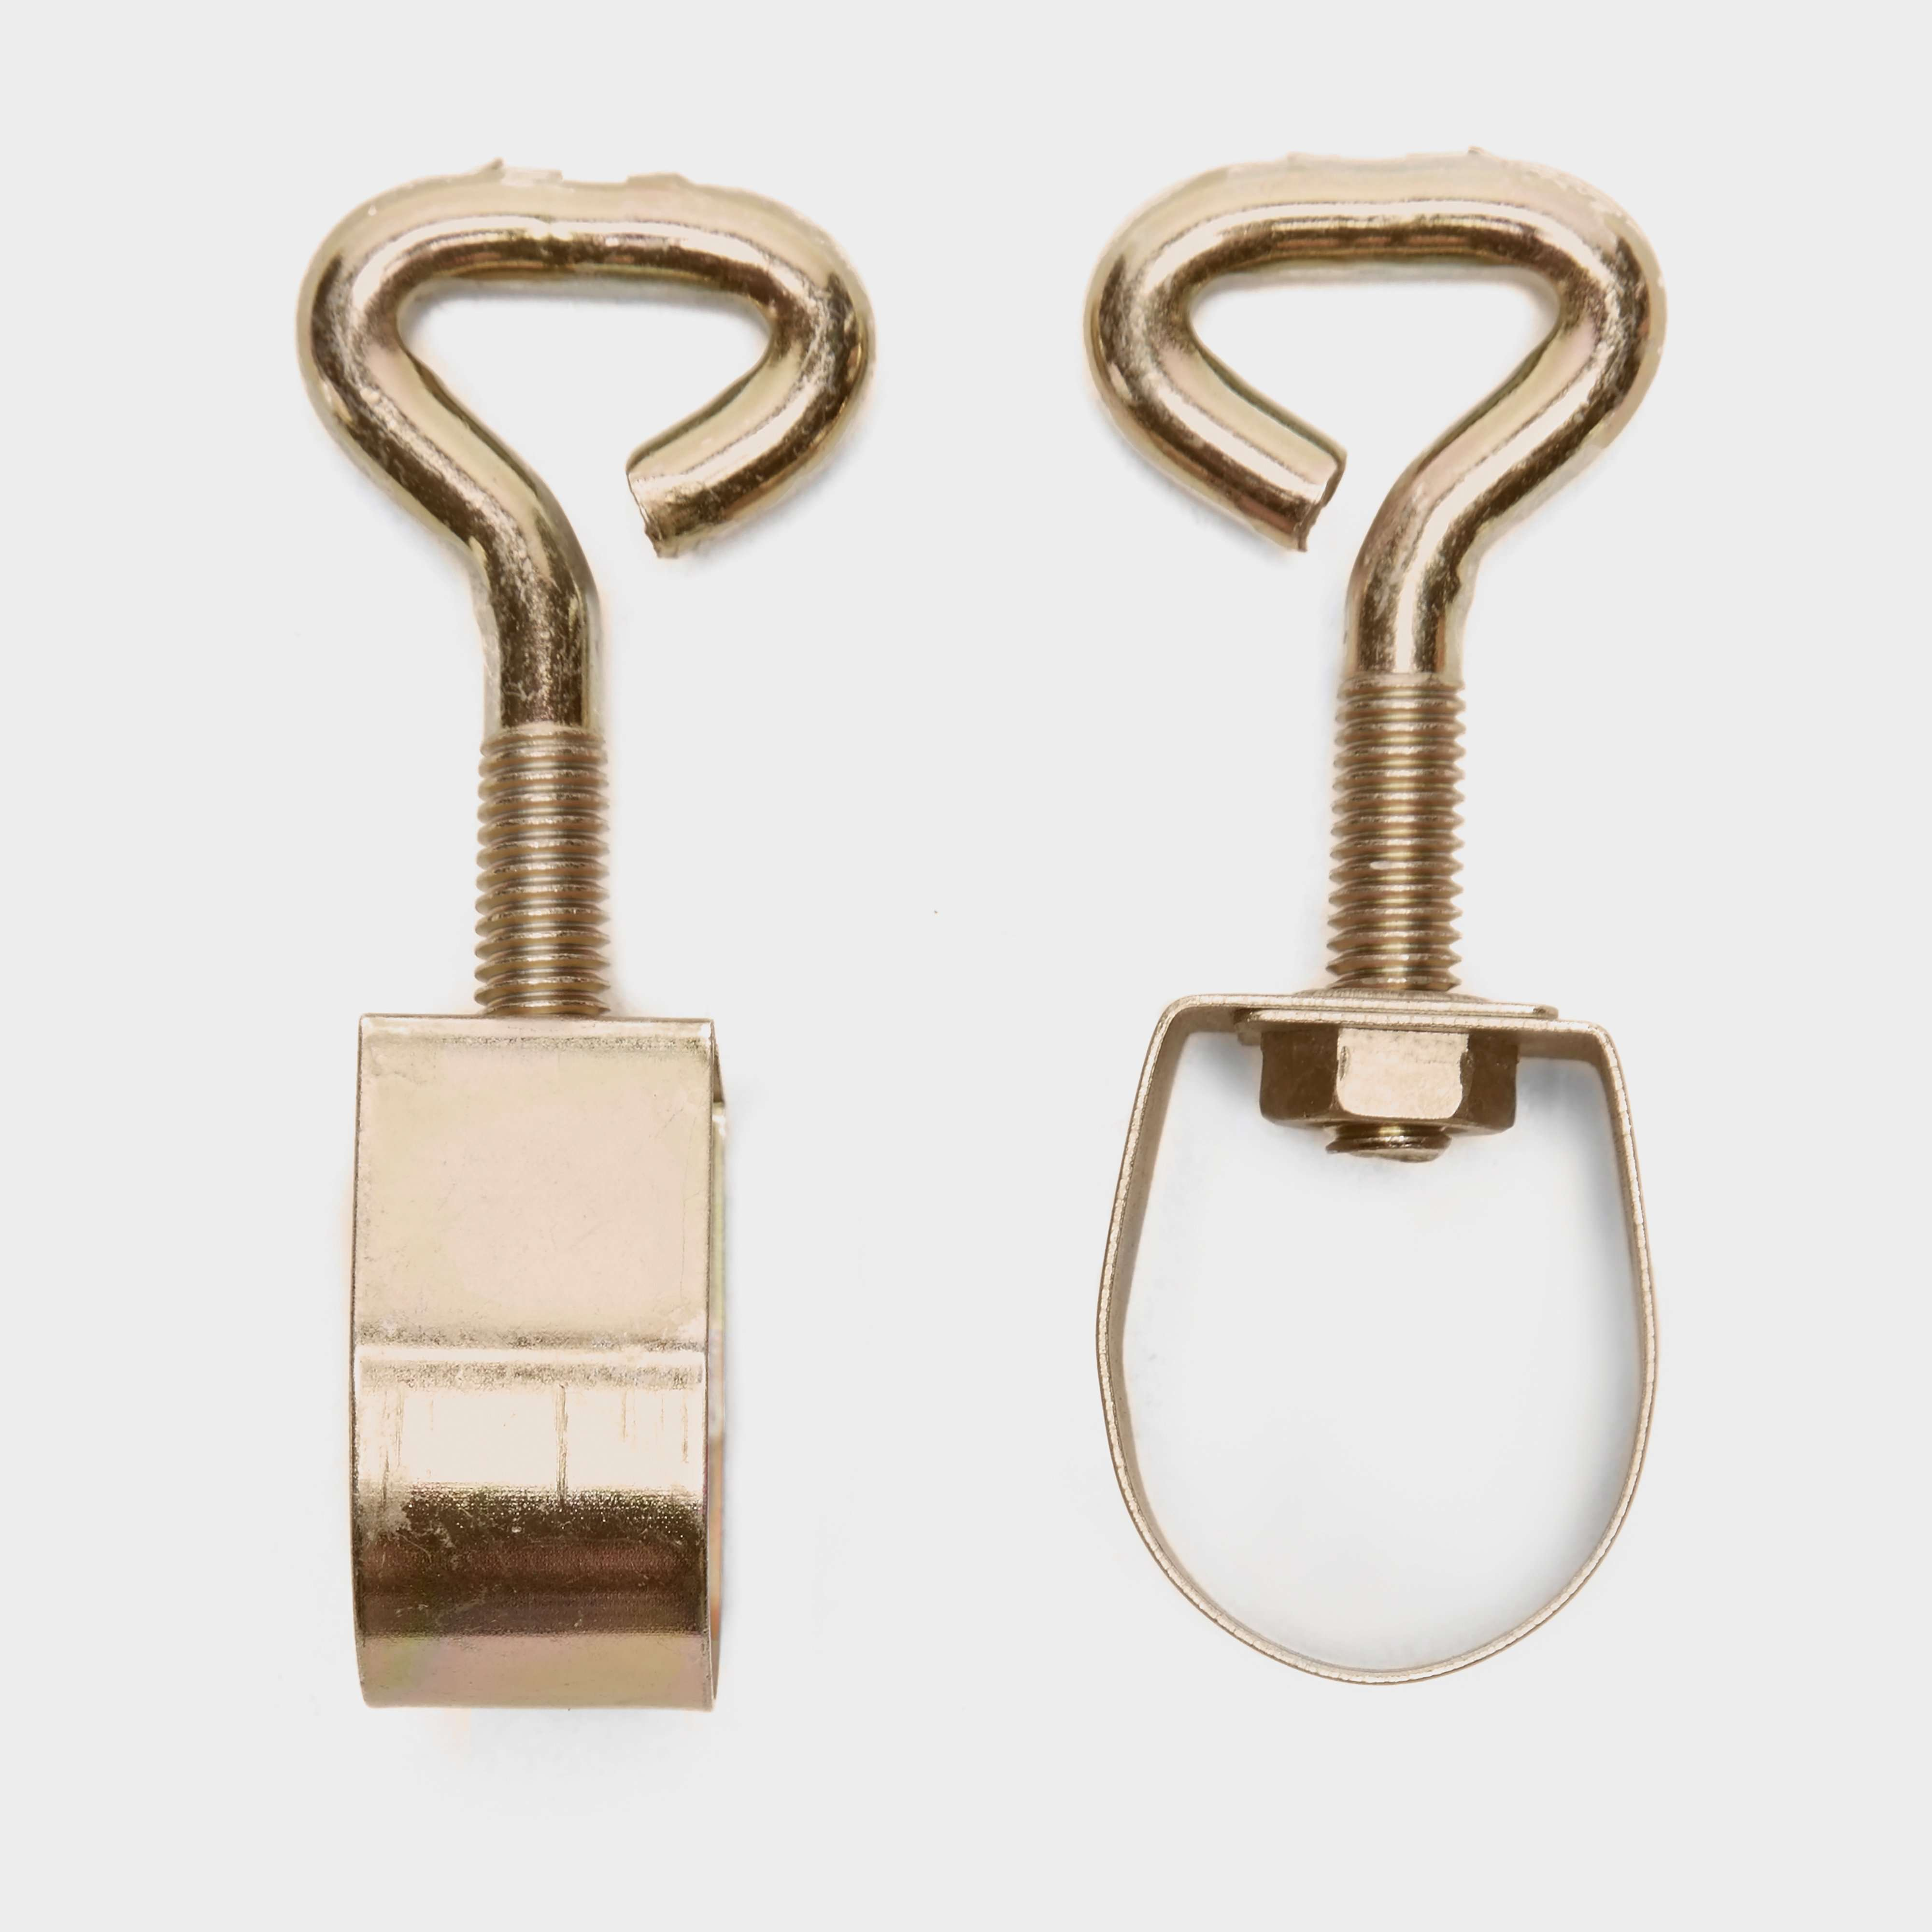 W4 Awning Pole Clamps